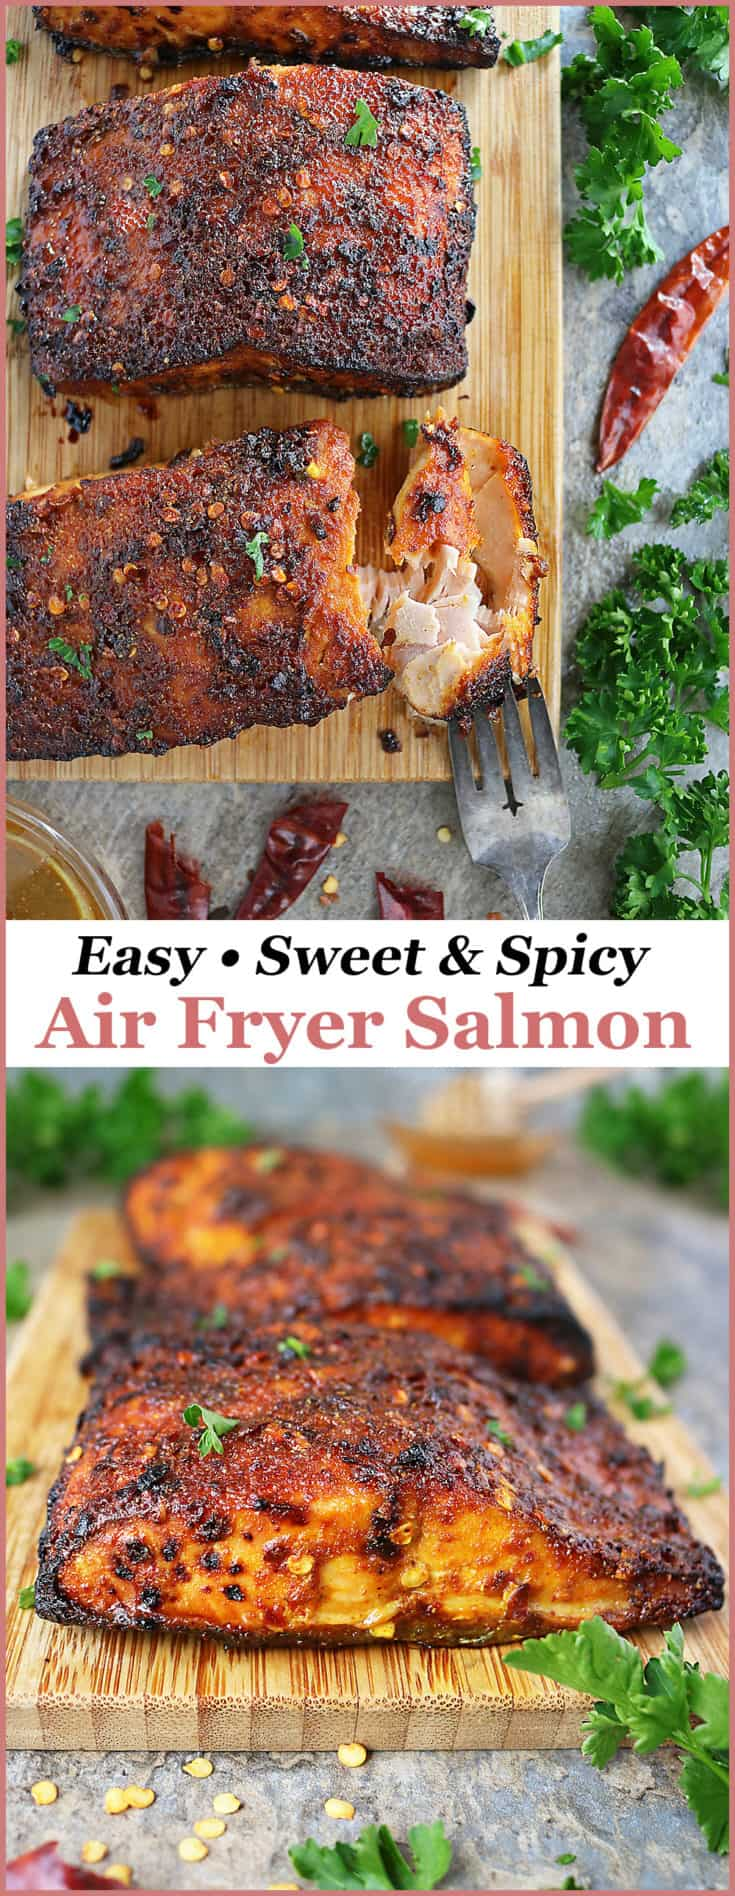 Chili and honey intertwine deliciously in this crispy, Easy Sweet Spicy Air Fryer Salmon recipe. With just 6 ingredients, you can have this salmon on the table in less than 15 minutes.